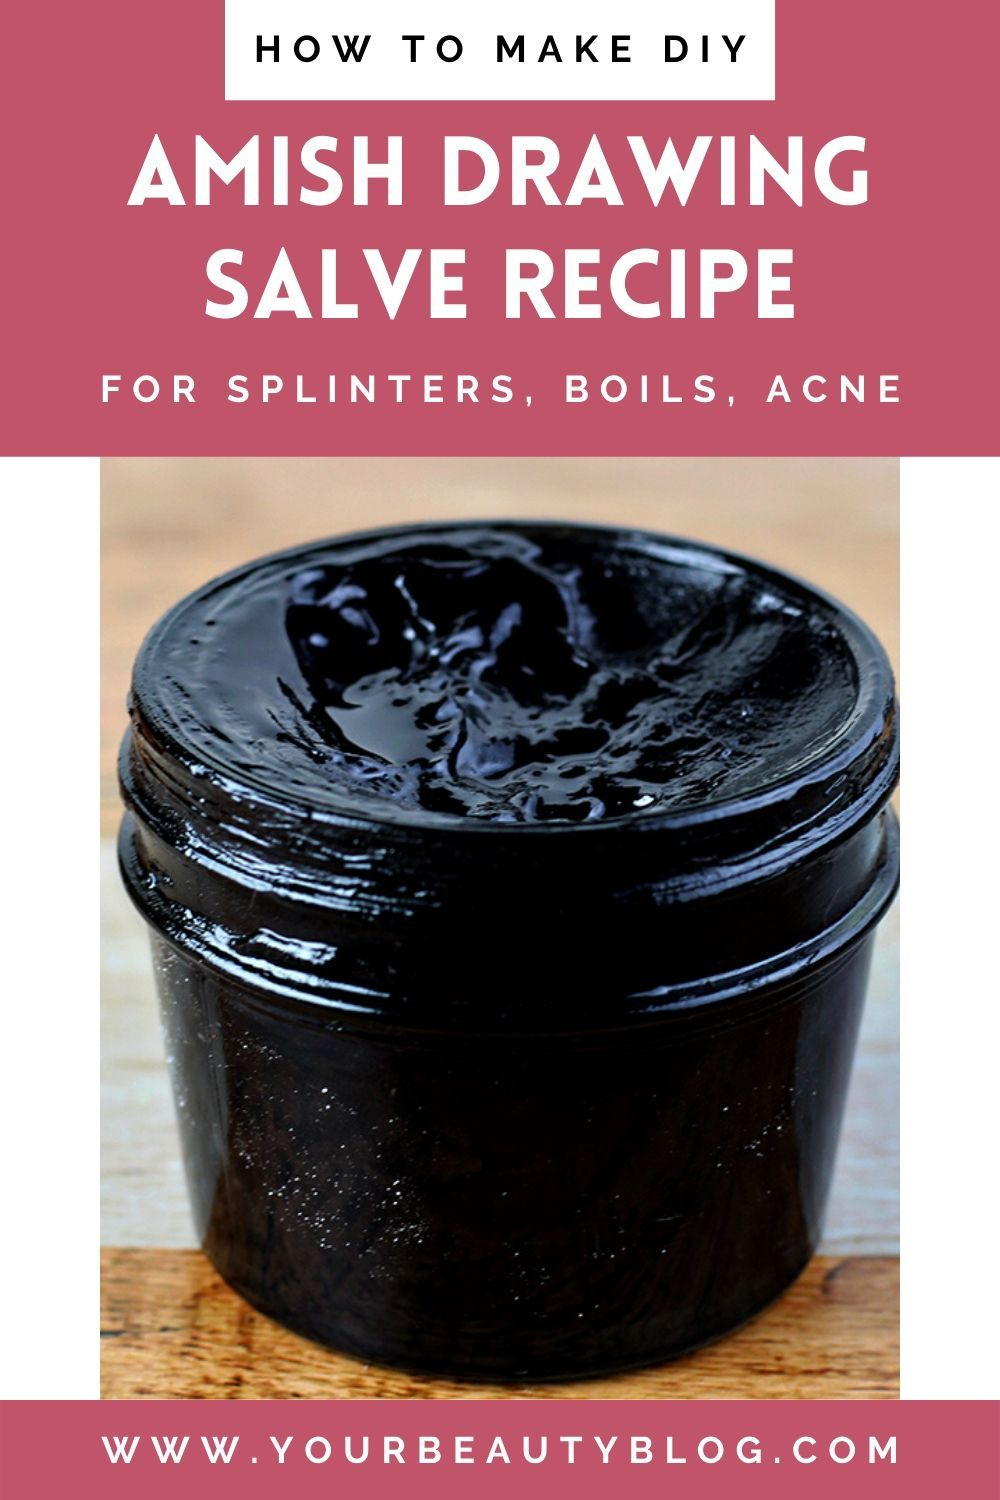 How to Make Amish Drawing Salve For Acne, Splinters, Bug Bites, Boils